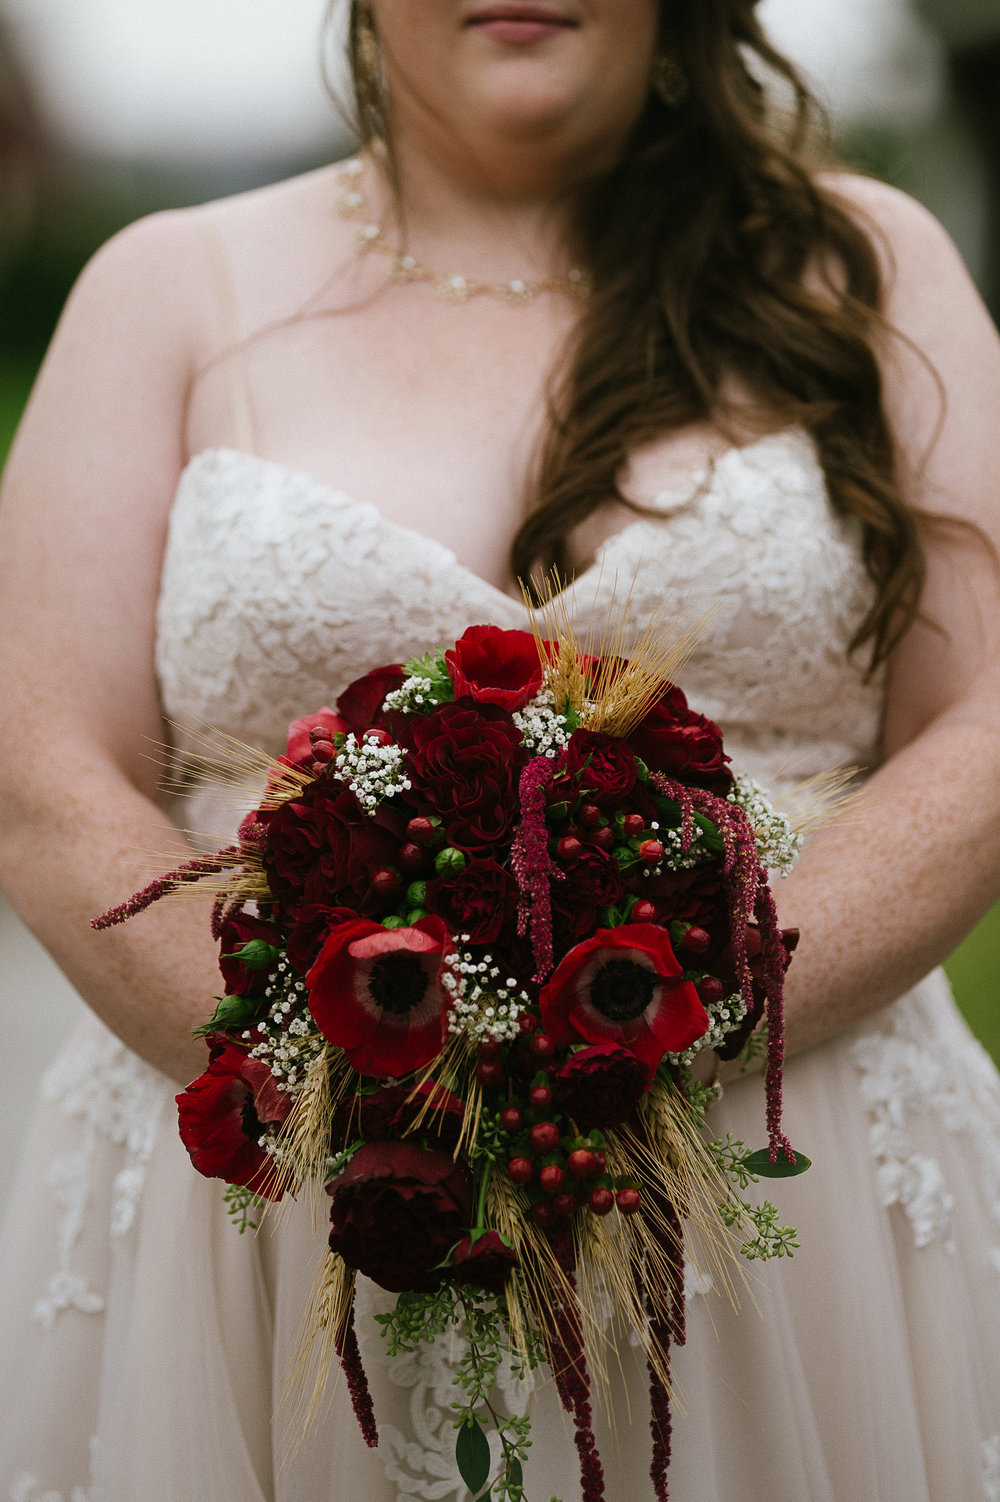 Swan Trail Farm Wedding_Sarah Schurman + Brian Skadan_Snohomish Wedding_Kelsey Lane Photography-5699.jpg